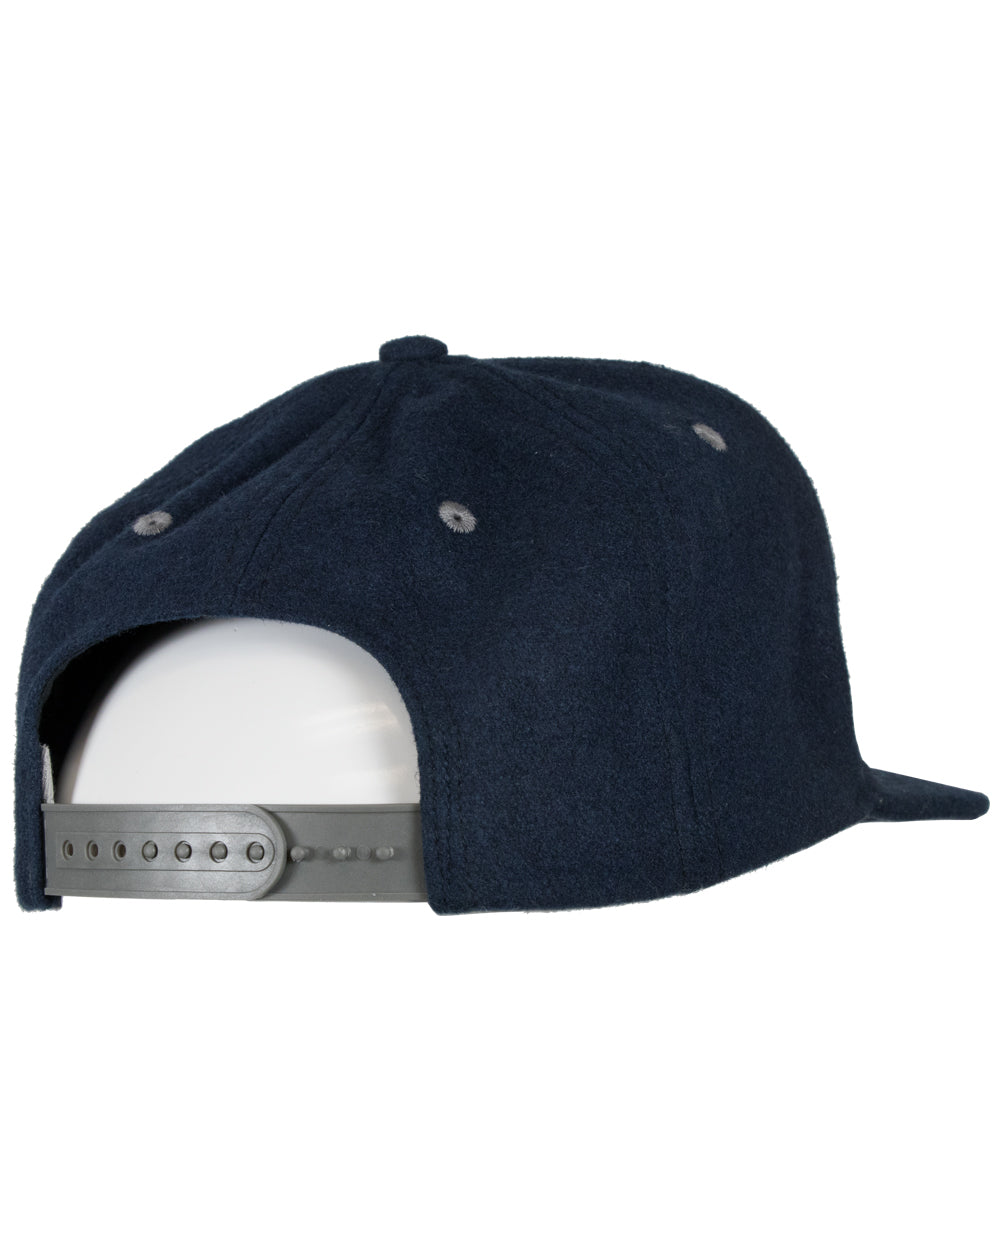 246871570d4 Loyalty Flatbrim Snapback Hat - Navy - Ski The East